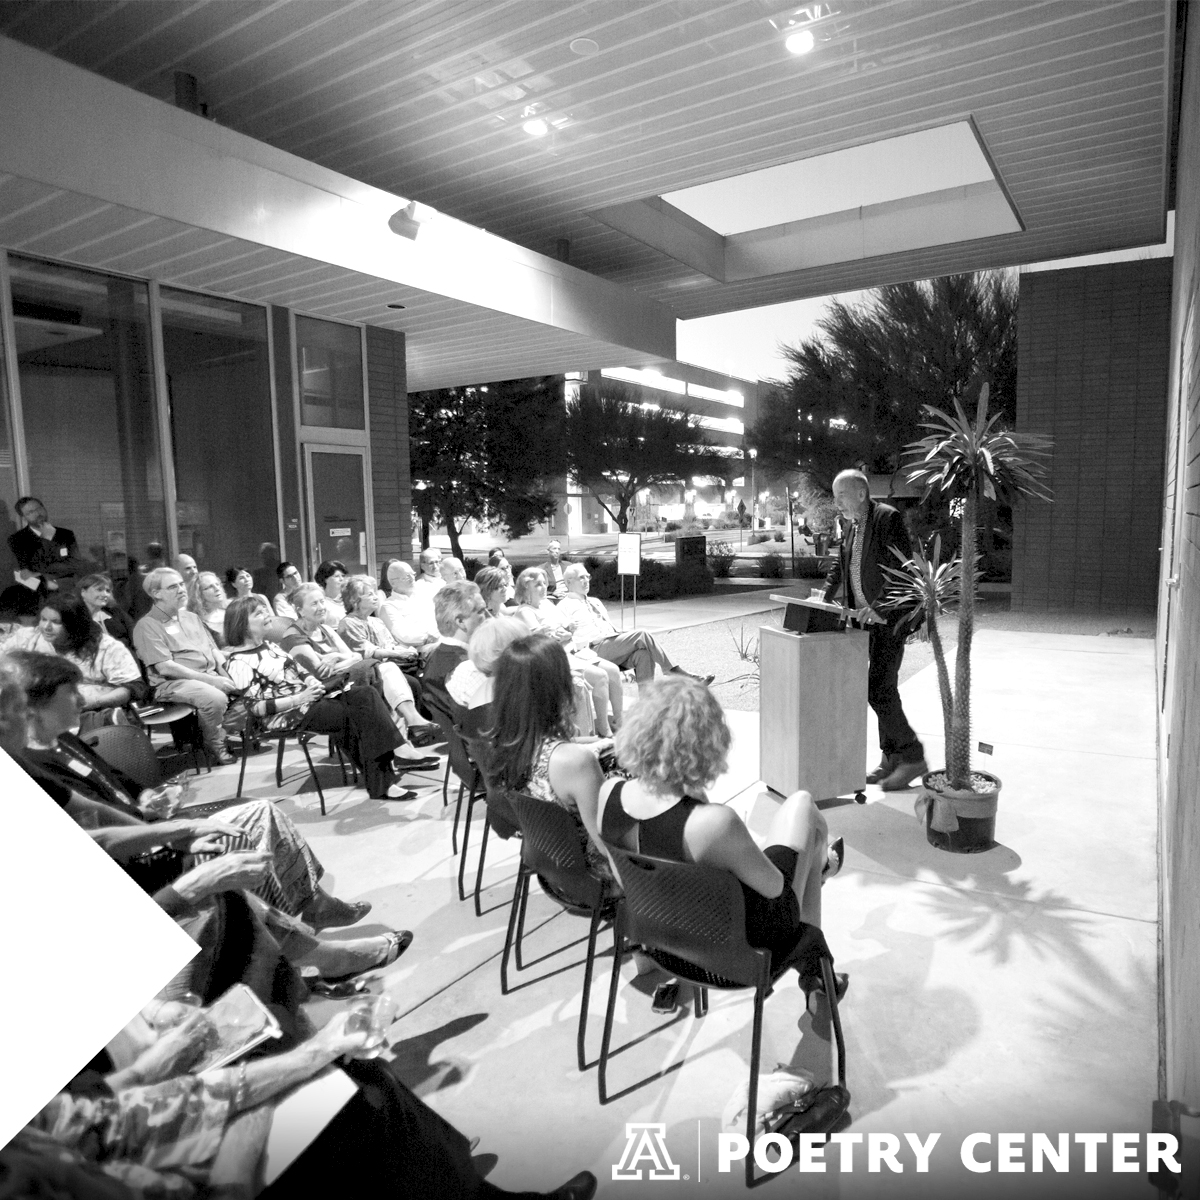 Audience watches poet read in Poetry Center breezeway